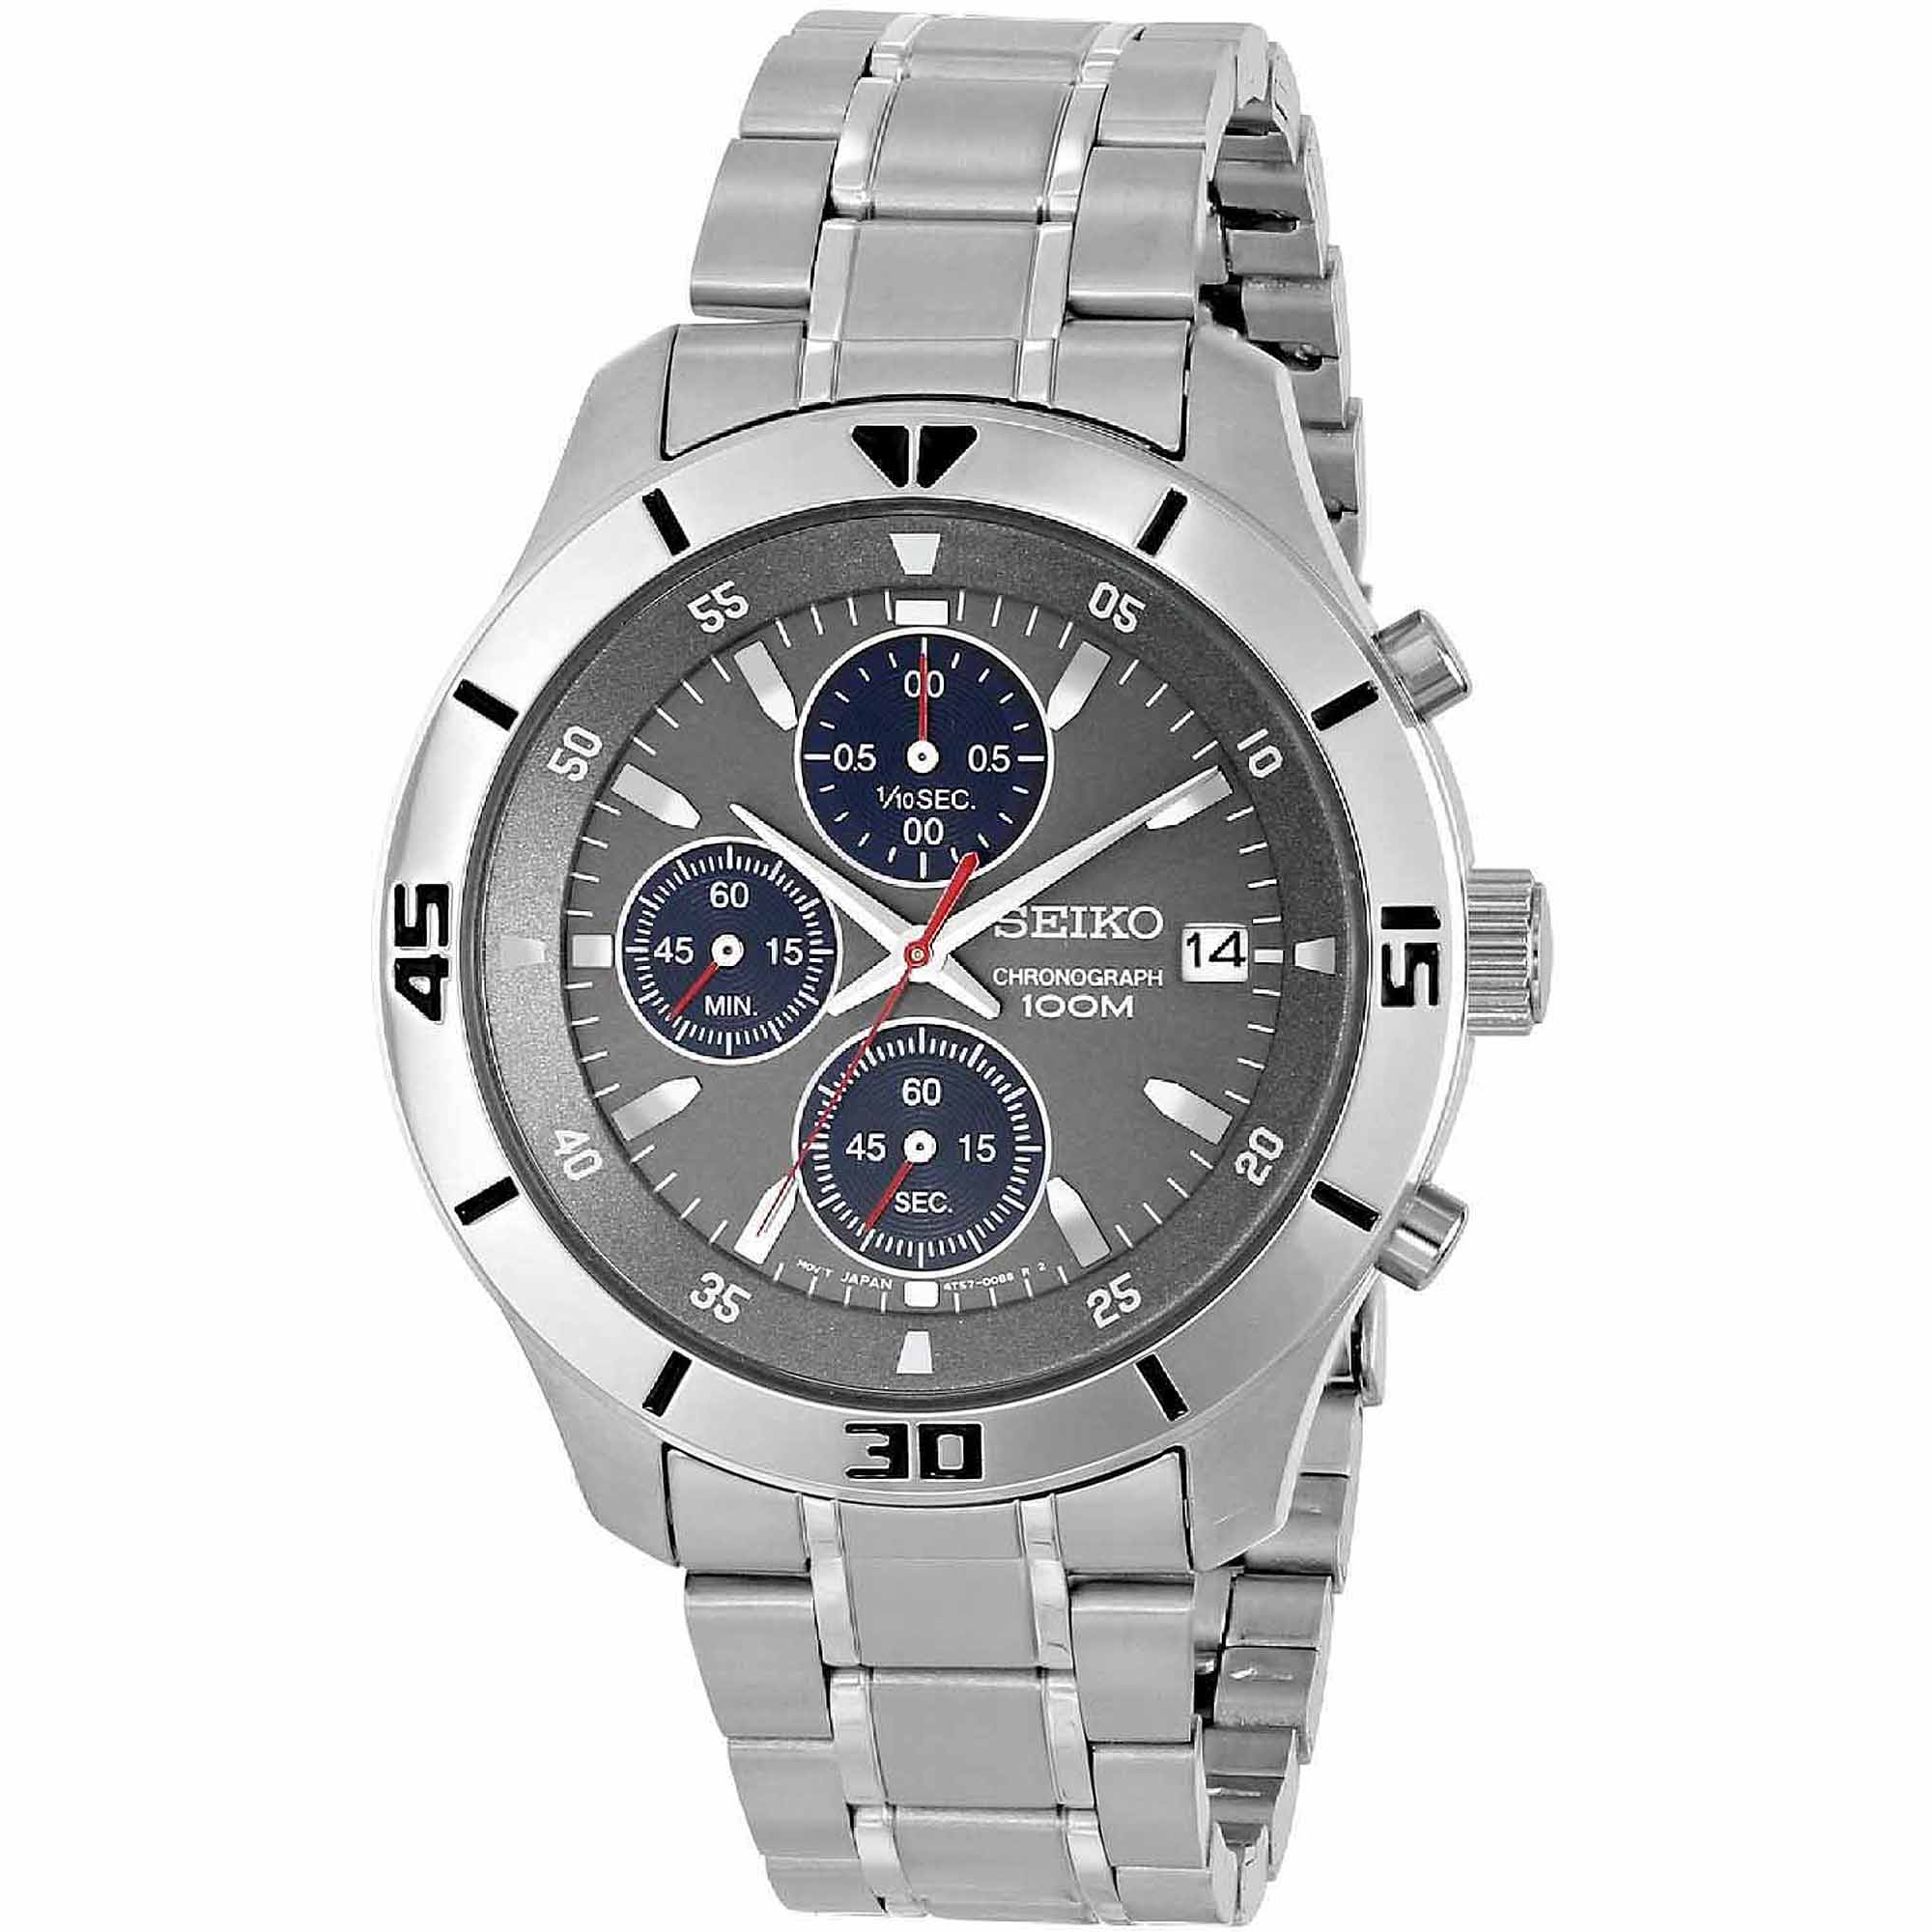 Seiko Stainless Steel Chronograph Watch with Grey Face and Blue Chronograph Subdials